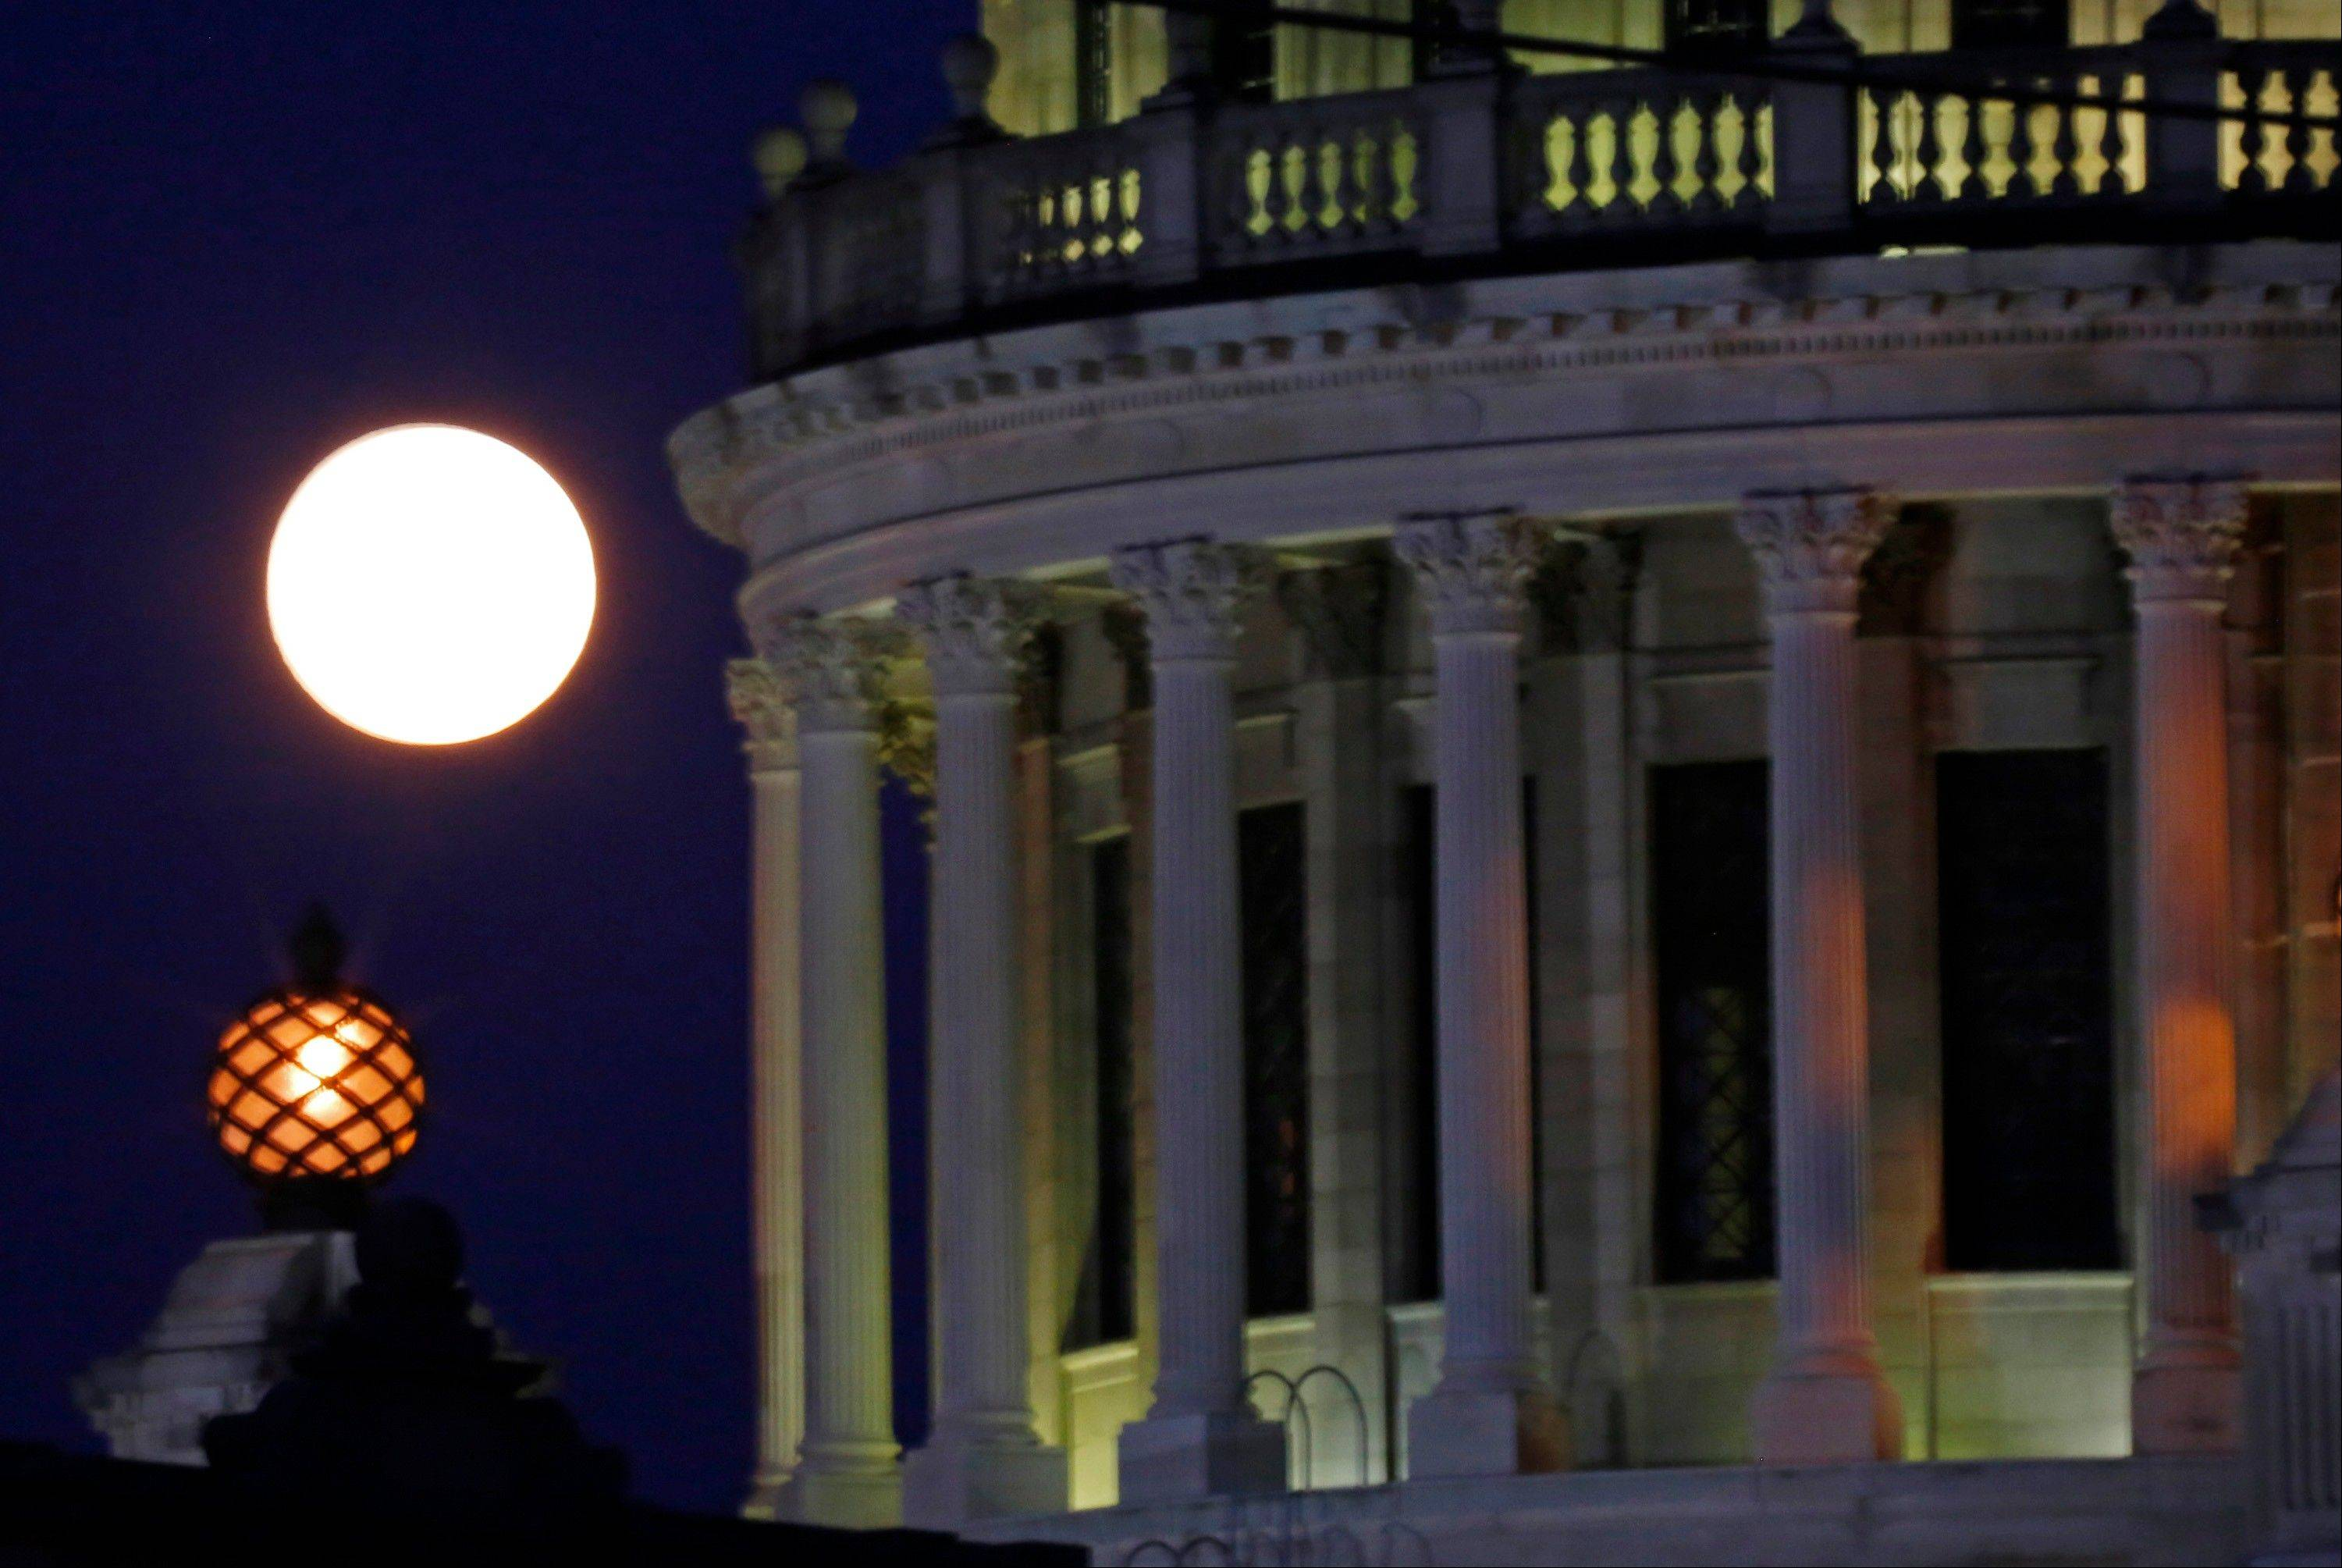 A full moon sets by the exterior of the state Capitol in Jackson, Miss., Sunday morning, June 23, 2013. The moon, which will reach its full stage Sunday, is expected to be significantly closer to earth during a phenomenon known as supermoon. (AP Photo/Rogelio V. Solis)